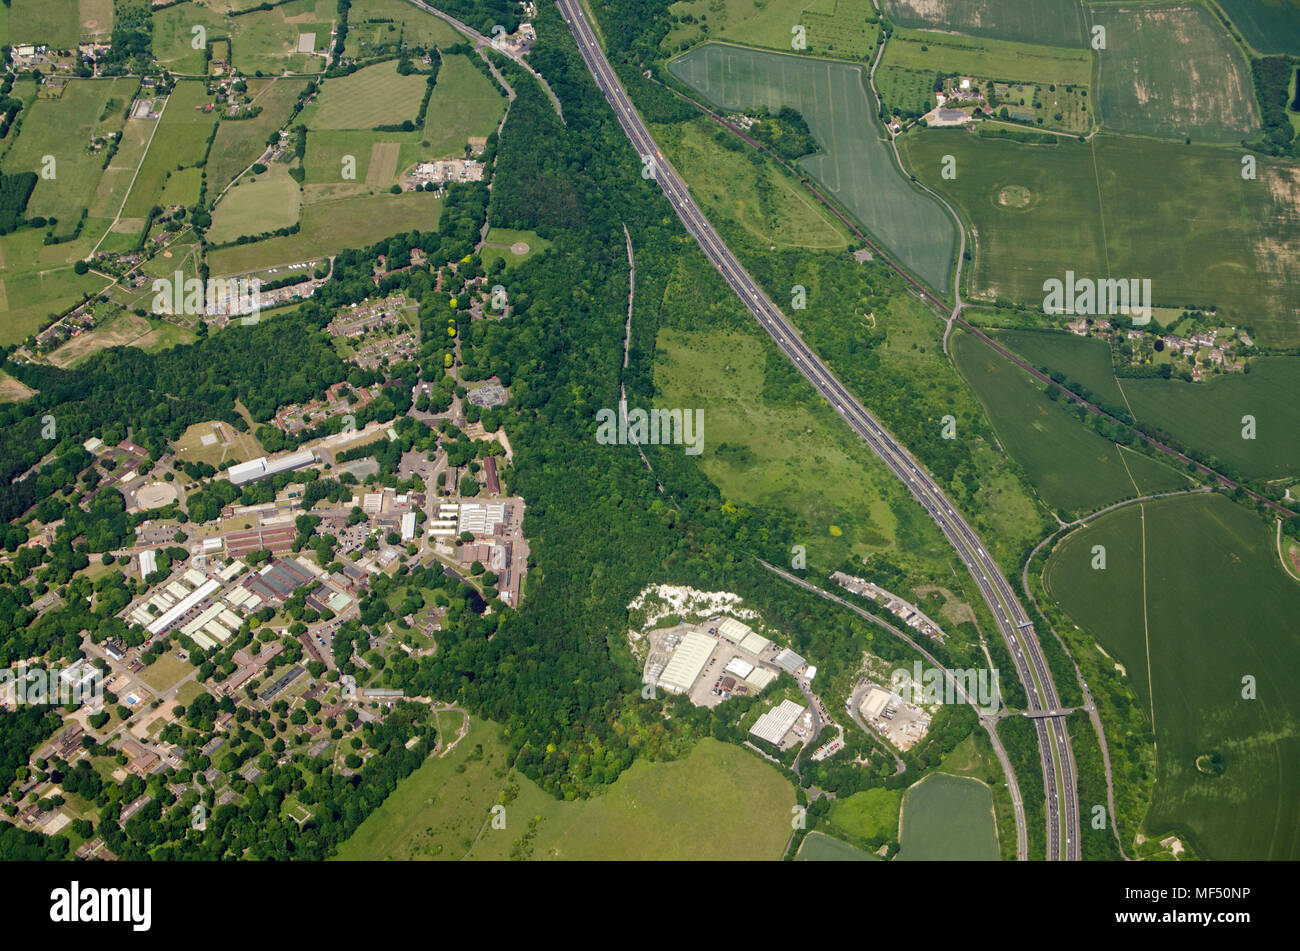 Aerial view of Fort Halstead, home to the Defence Science and Technology Laboroatory run by Qinetiq for the Ministry of Defence.  Sunny summer day nea - Stock Image